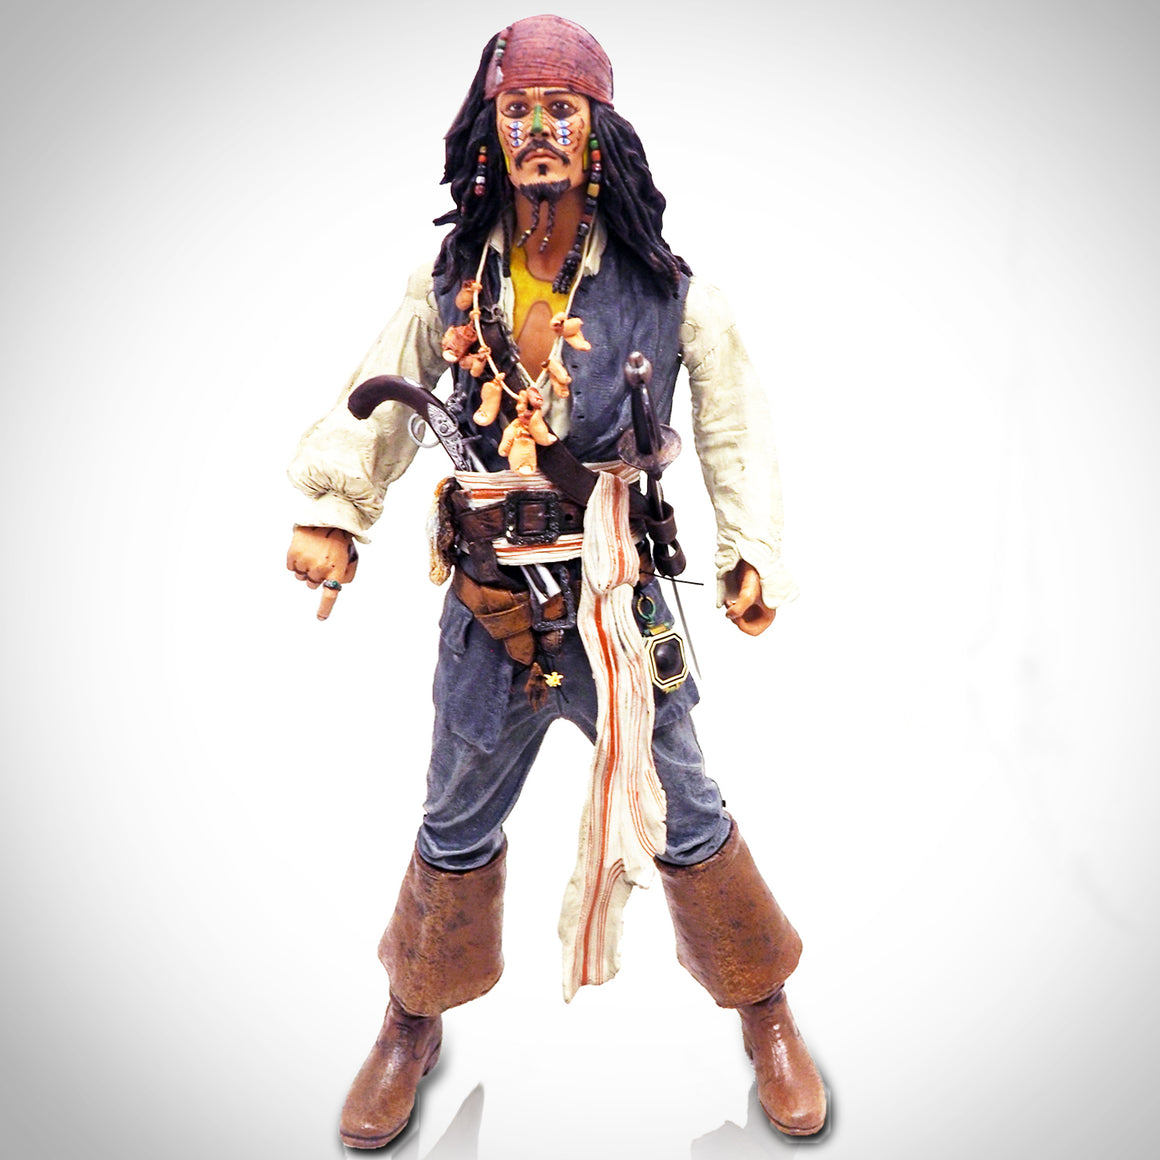 'PIRATES OF THE CARIBBEAN - CAPTAIN JACK SPARROW' 18' Statue